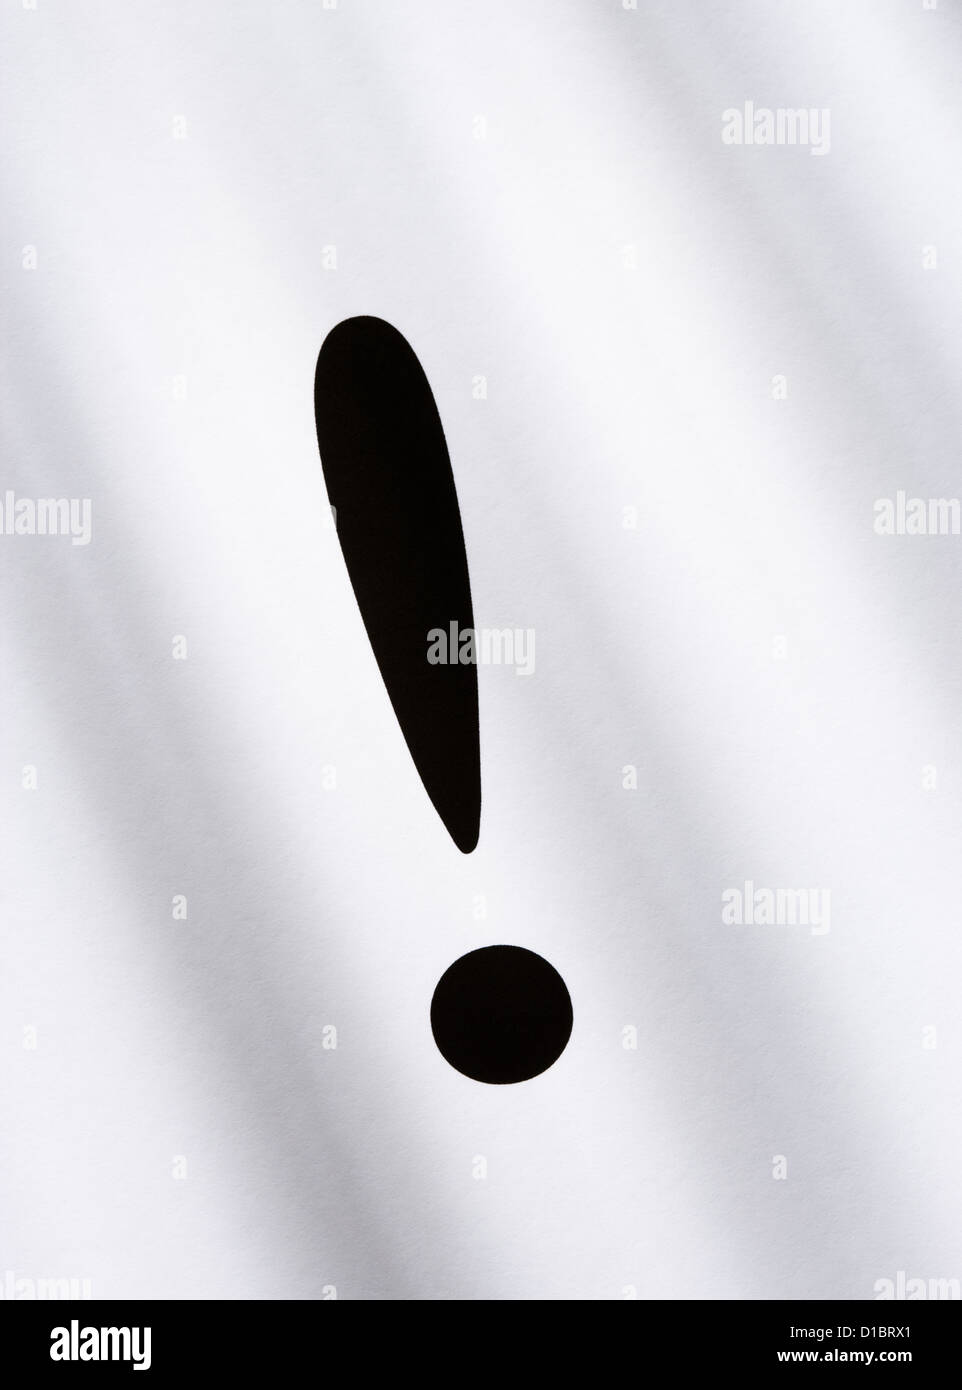 Exclamation mark. - Stock Image